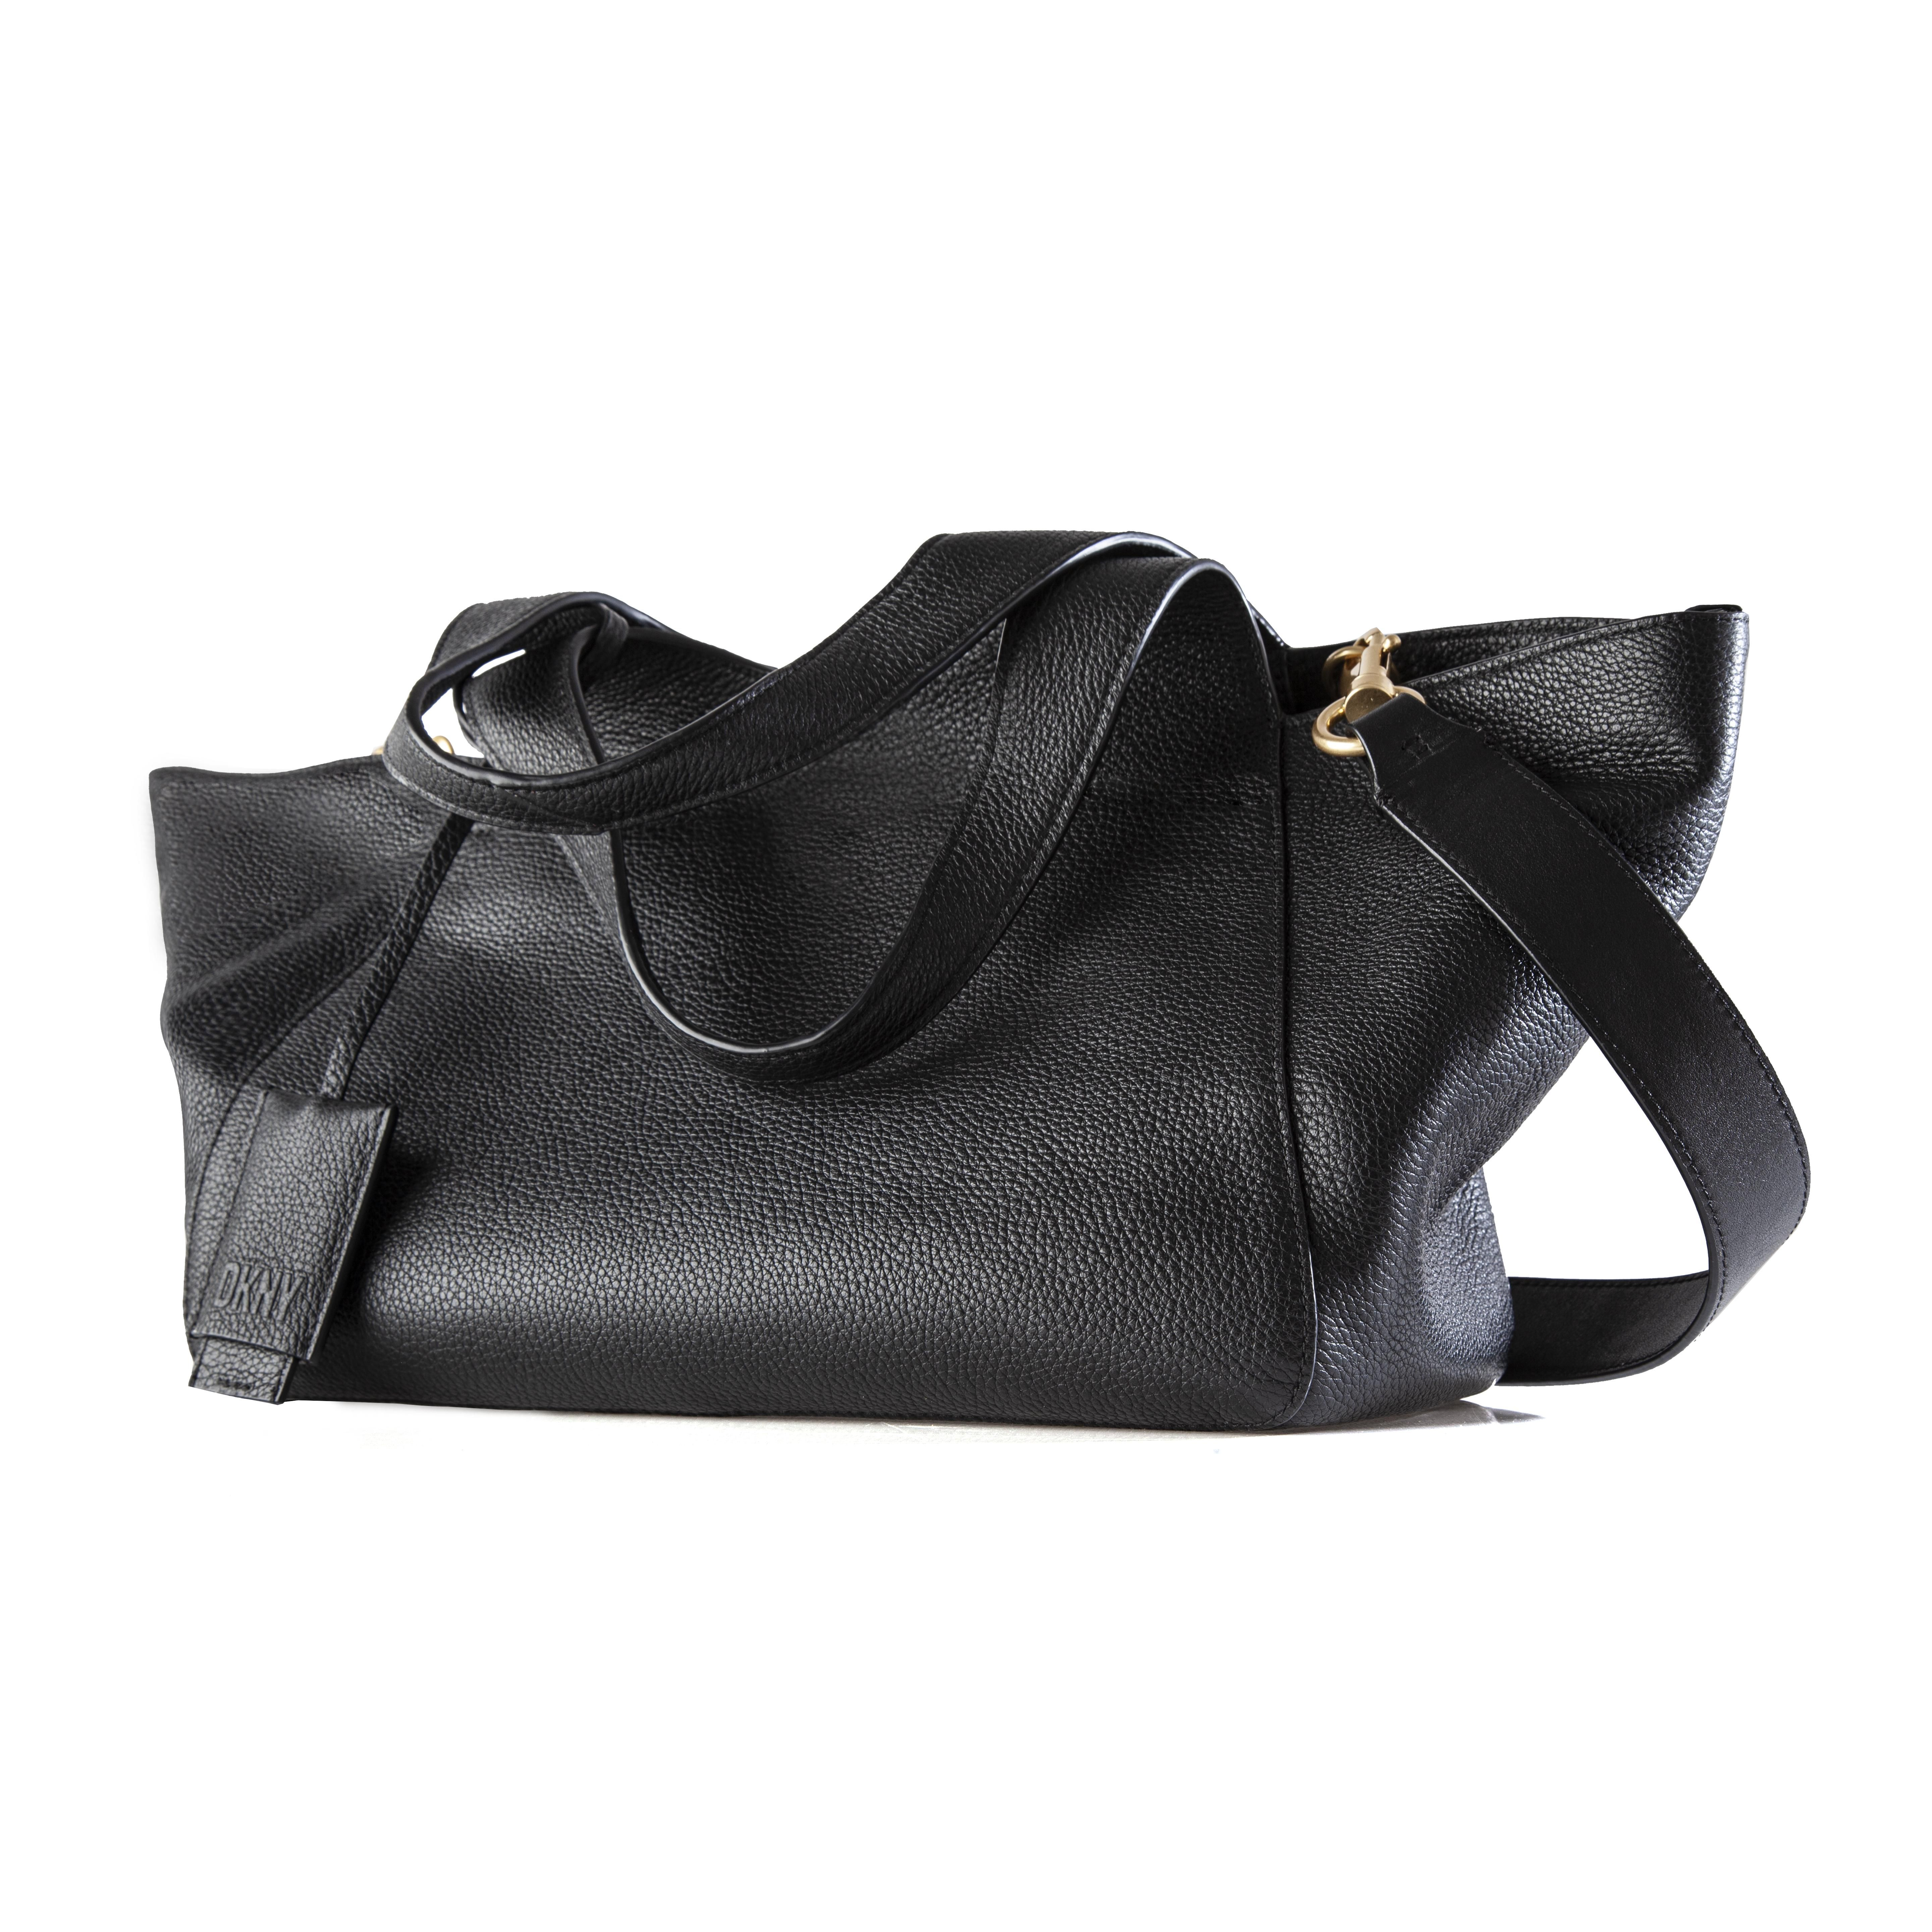 The Effortless Tote Large